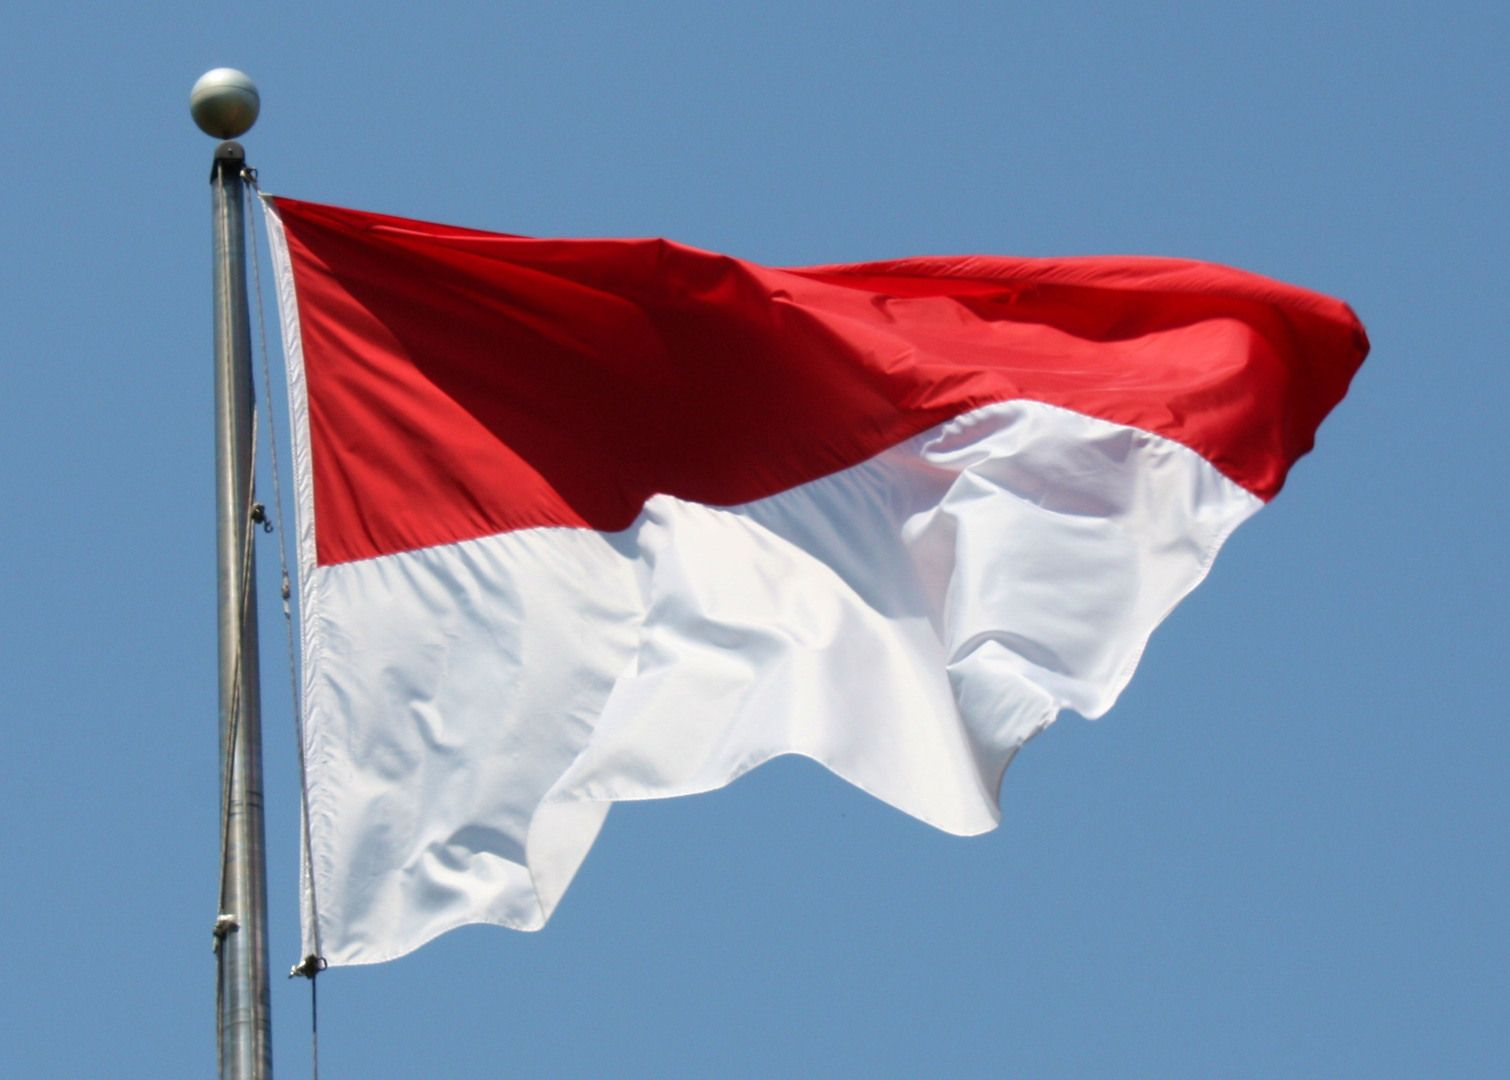 The Bendera Pusaka Sang Saka Merah Putih English The Sacred Red And White Heirloom Flag Was The First Indonesian Flag Sewn By Sukar Bendera Indonesia Merah